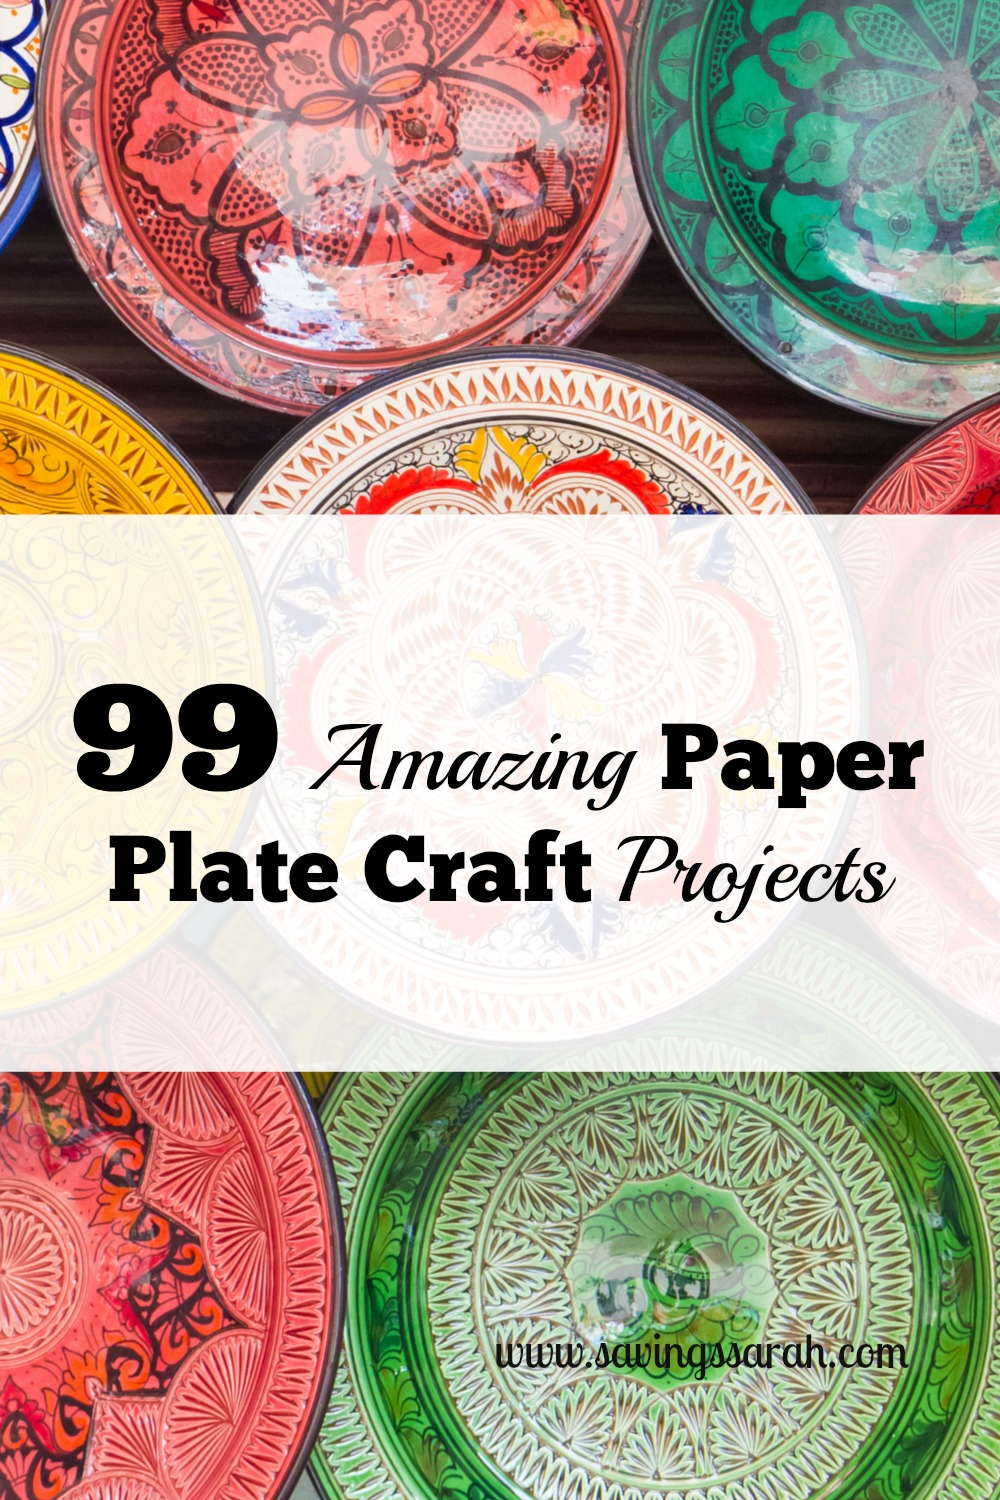 99 amazing paper plate craft projects earning and saving with sarah jeuxipadfo Image collections